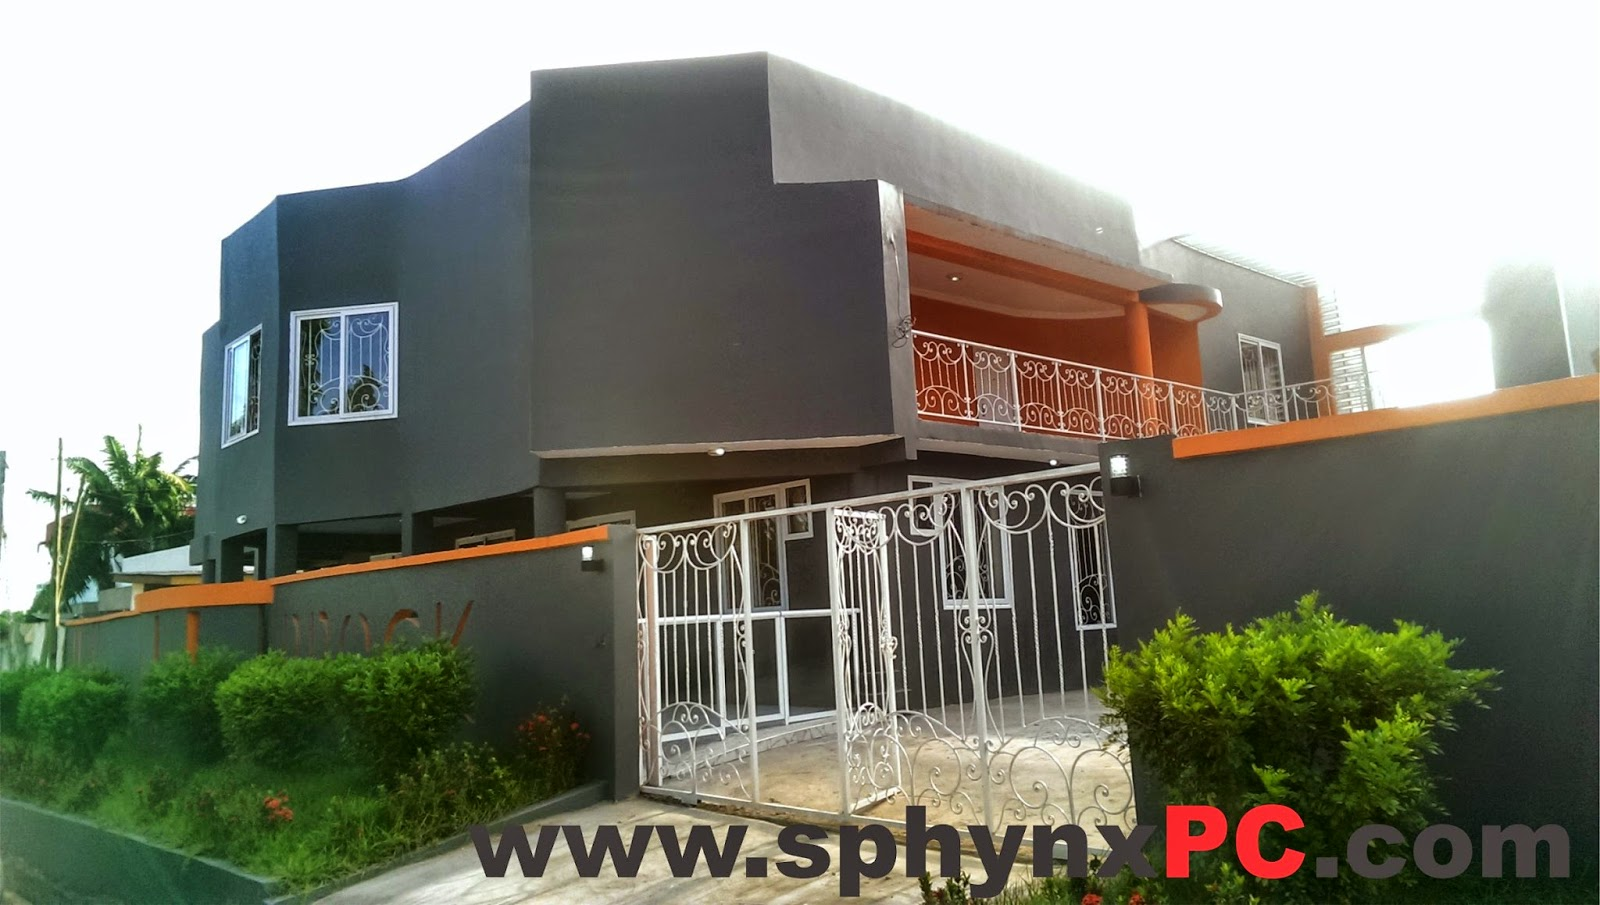 Ghana Real Estate Affordable Houses Homes likewise 2 besides Luxurious Mansions Gallery Home Styles further Un pleted Houses For Sale In Accra Ghana as well Real Estate Ghana 3 Bedroom. on trasacco valley ghana real estate